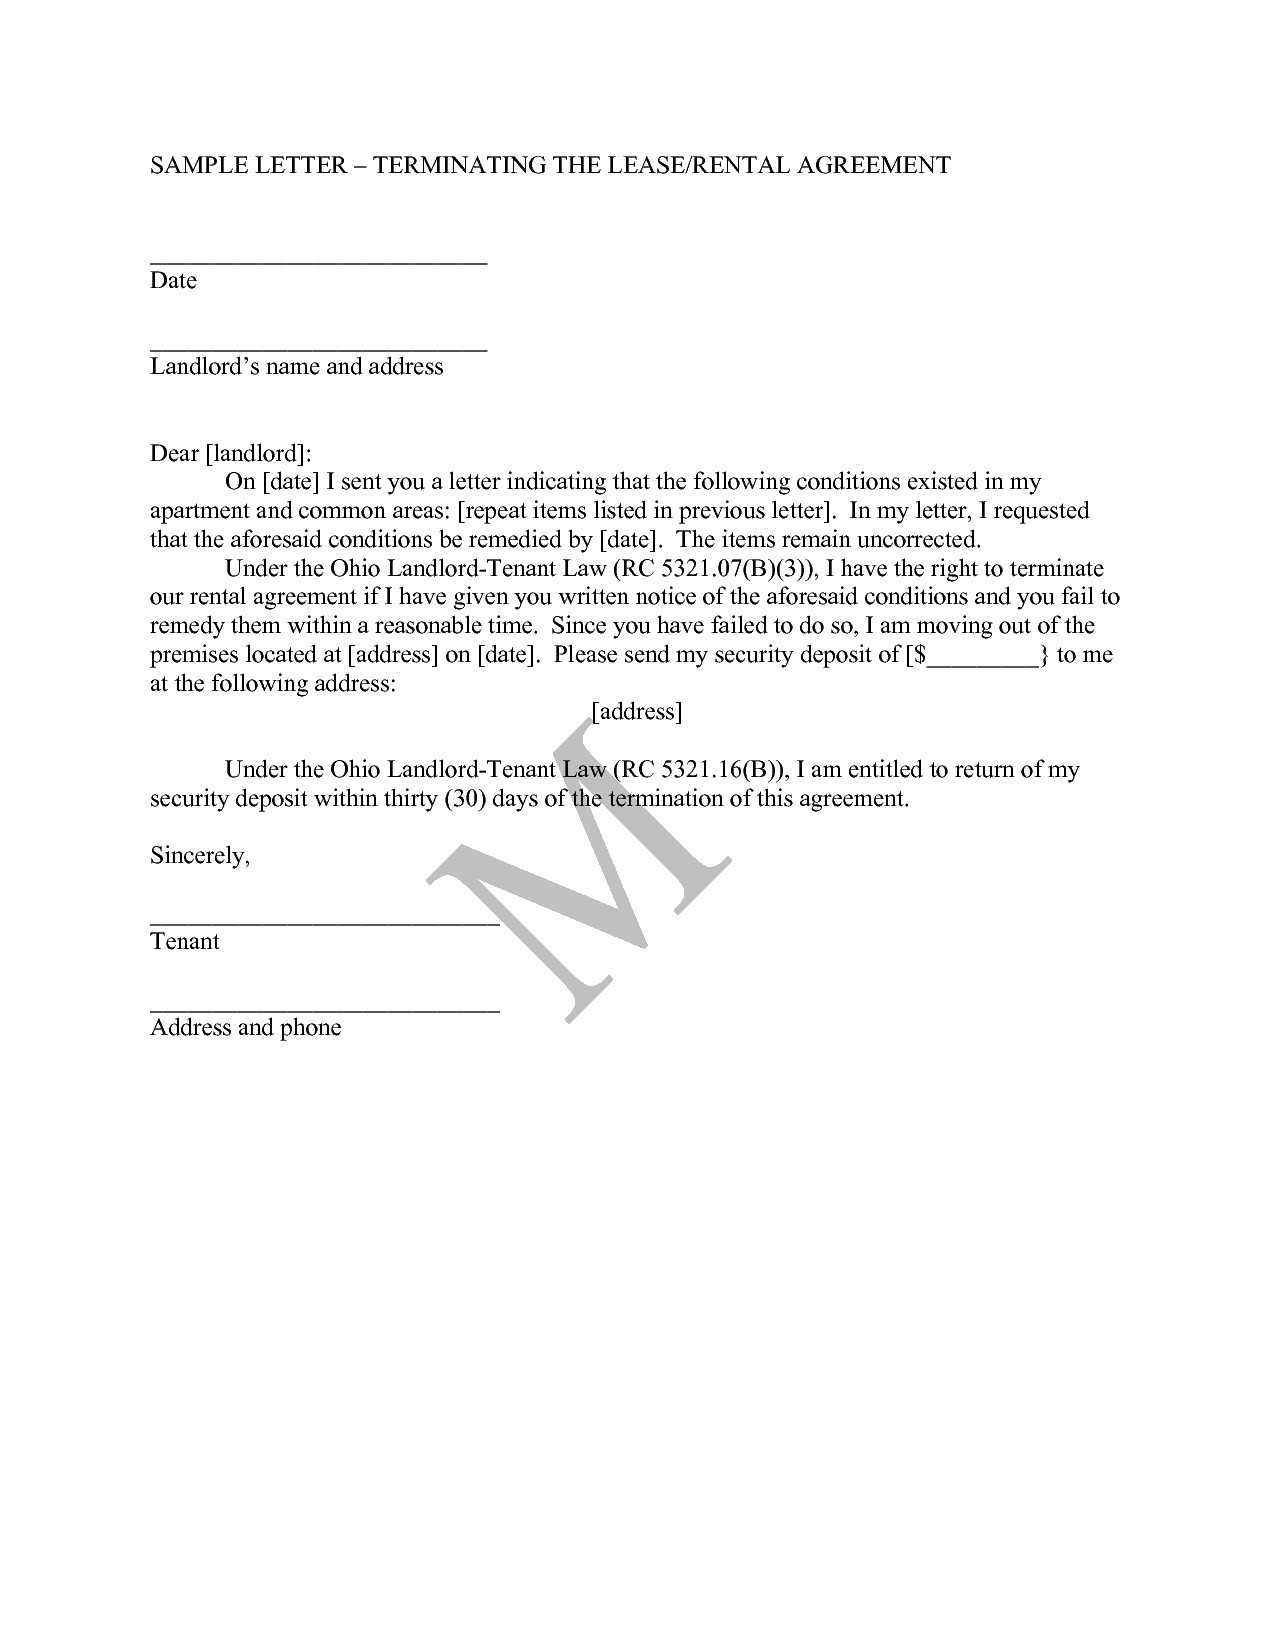 Termination Of Rental Agreement Letter Template - Letter format for Agreement Termination Valid Letter format for